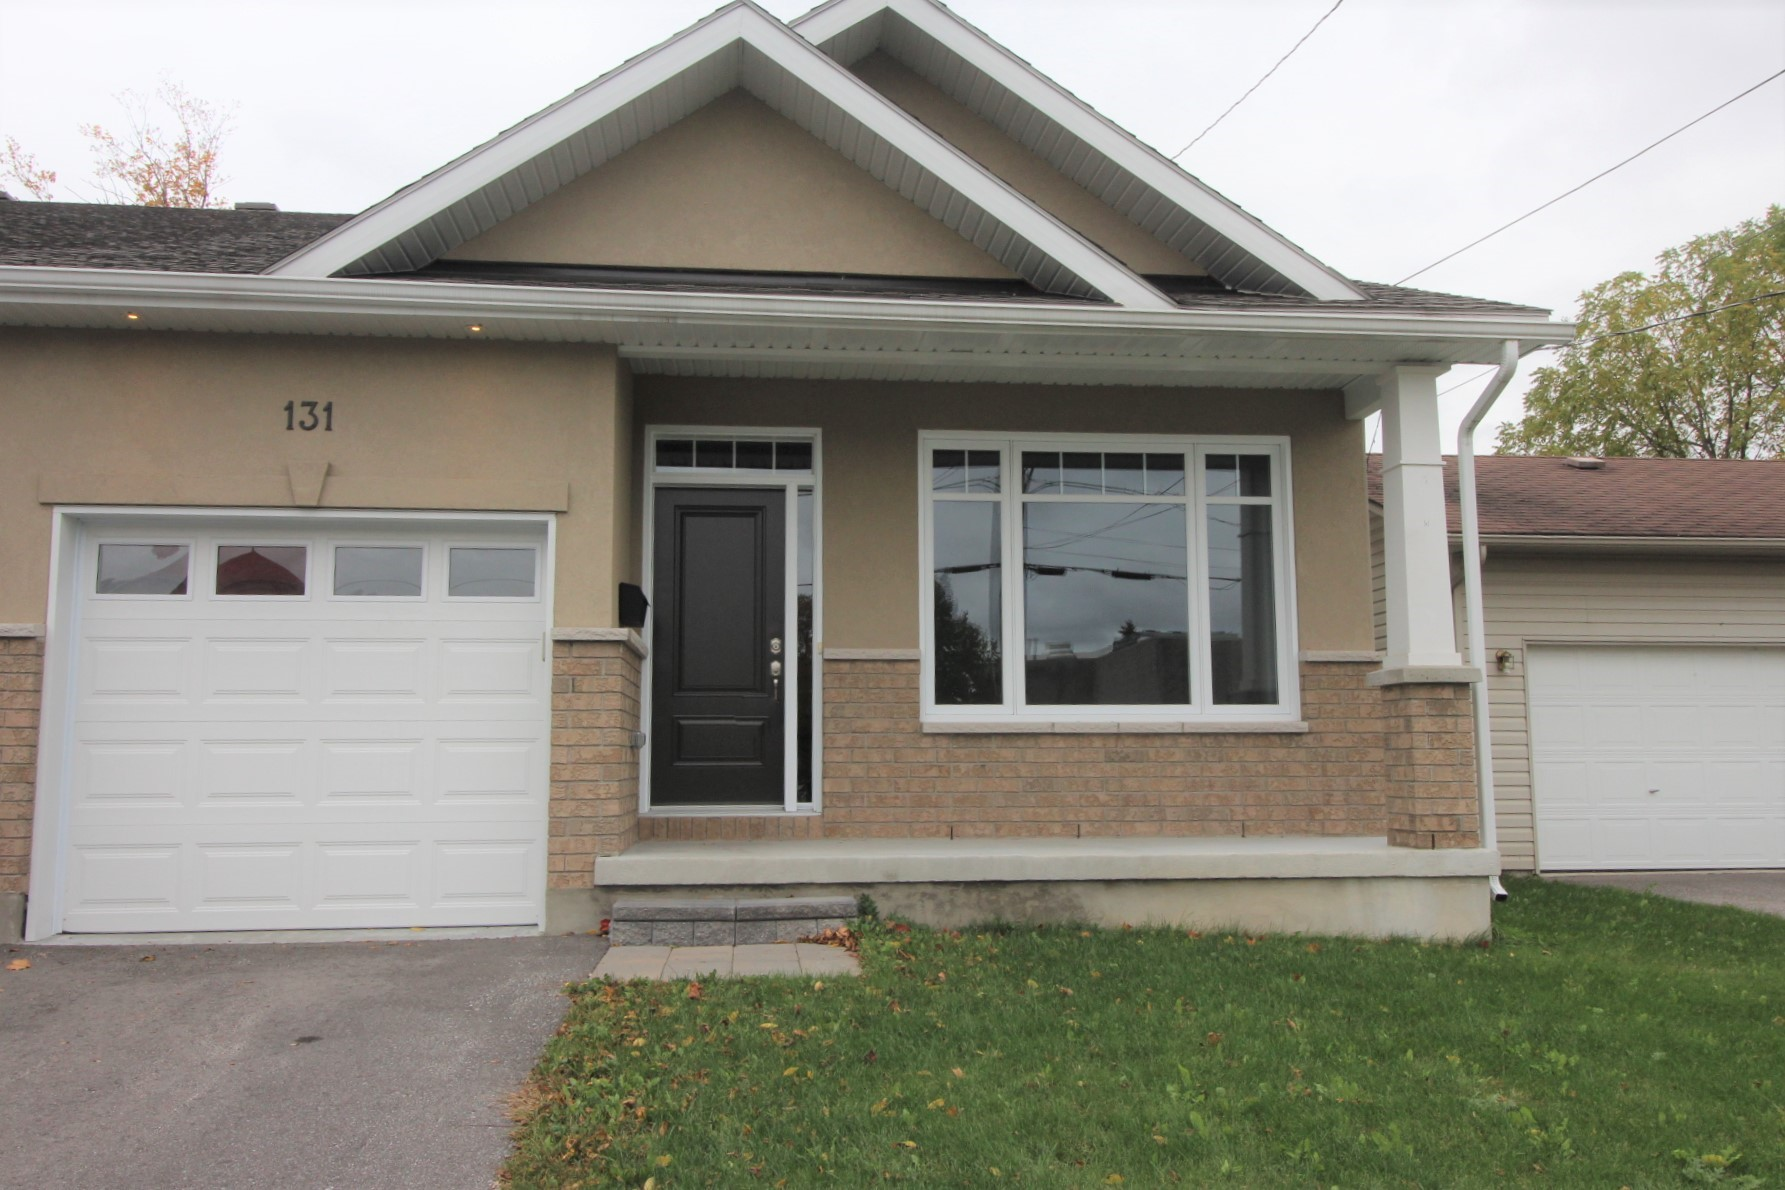 131 Elizabeth St - Stunning Split Level Home with Walkout in Carleton Place!